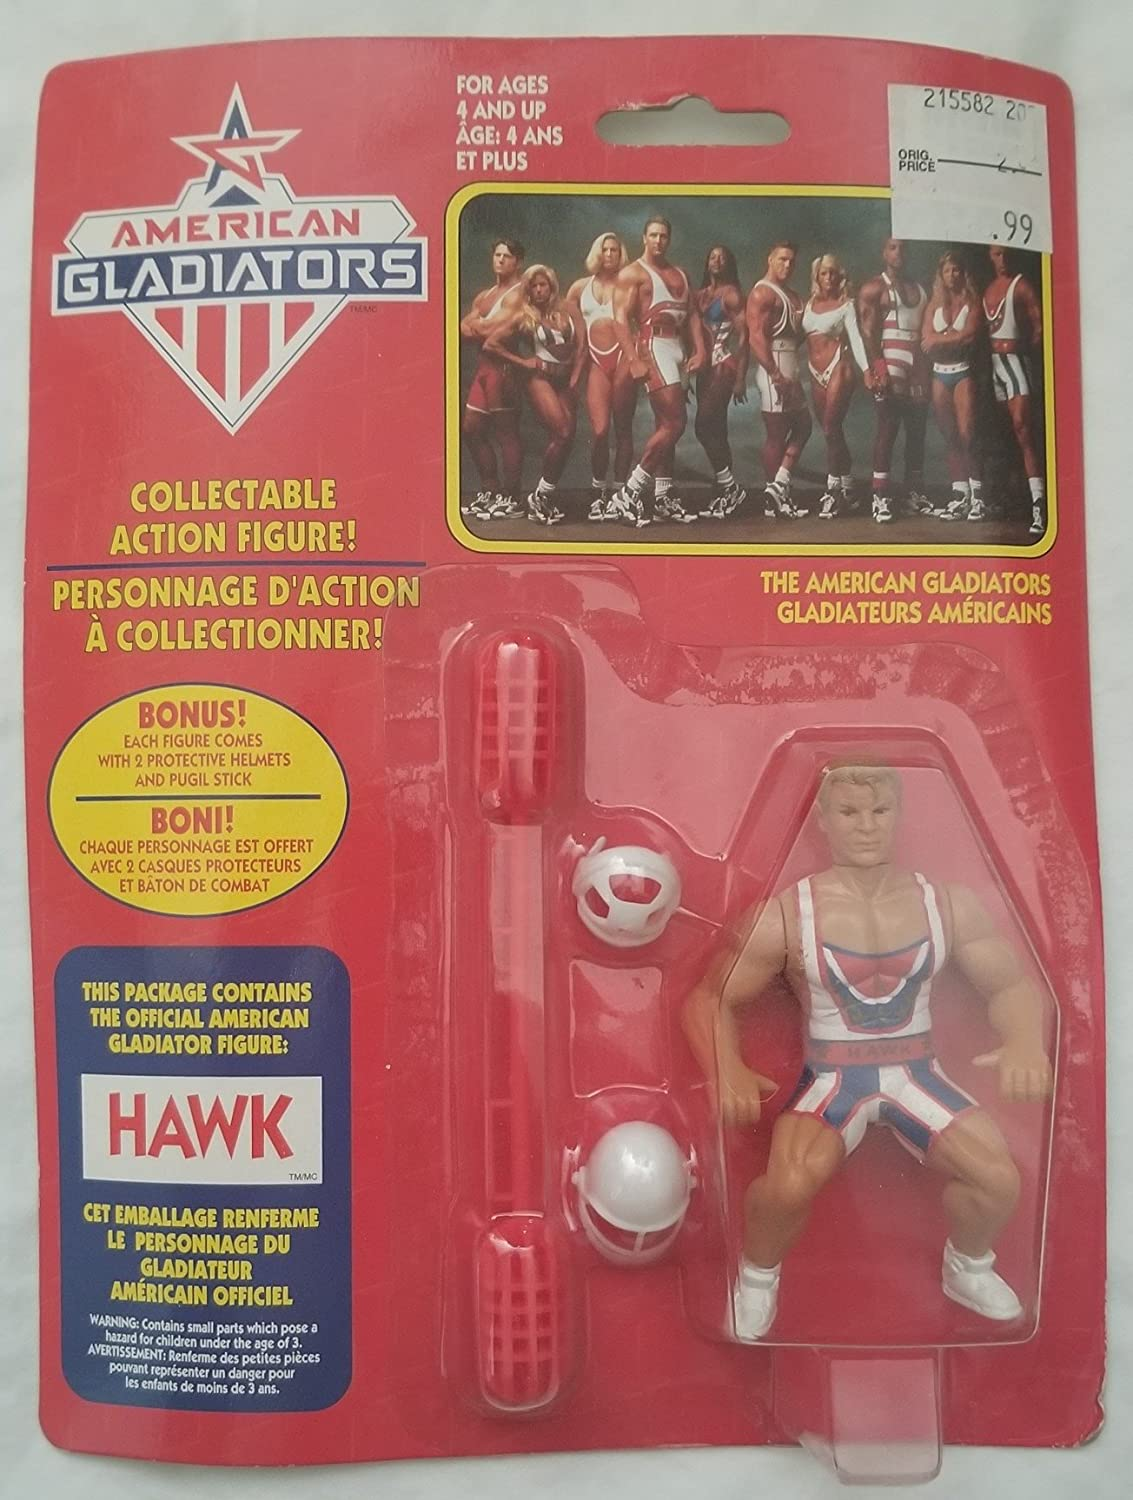 The American Gladiators Hawk by Irwin Canada/French